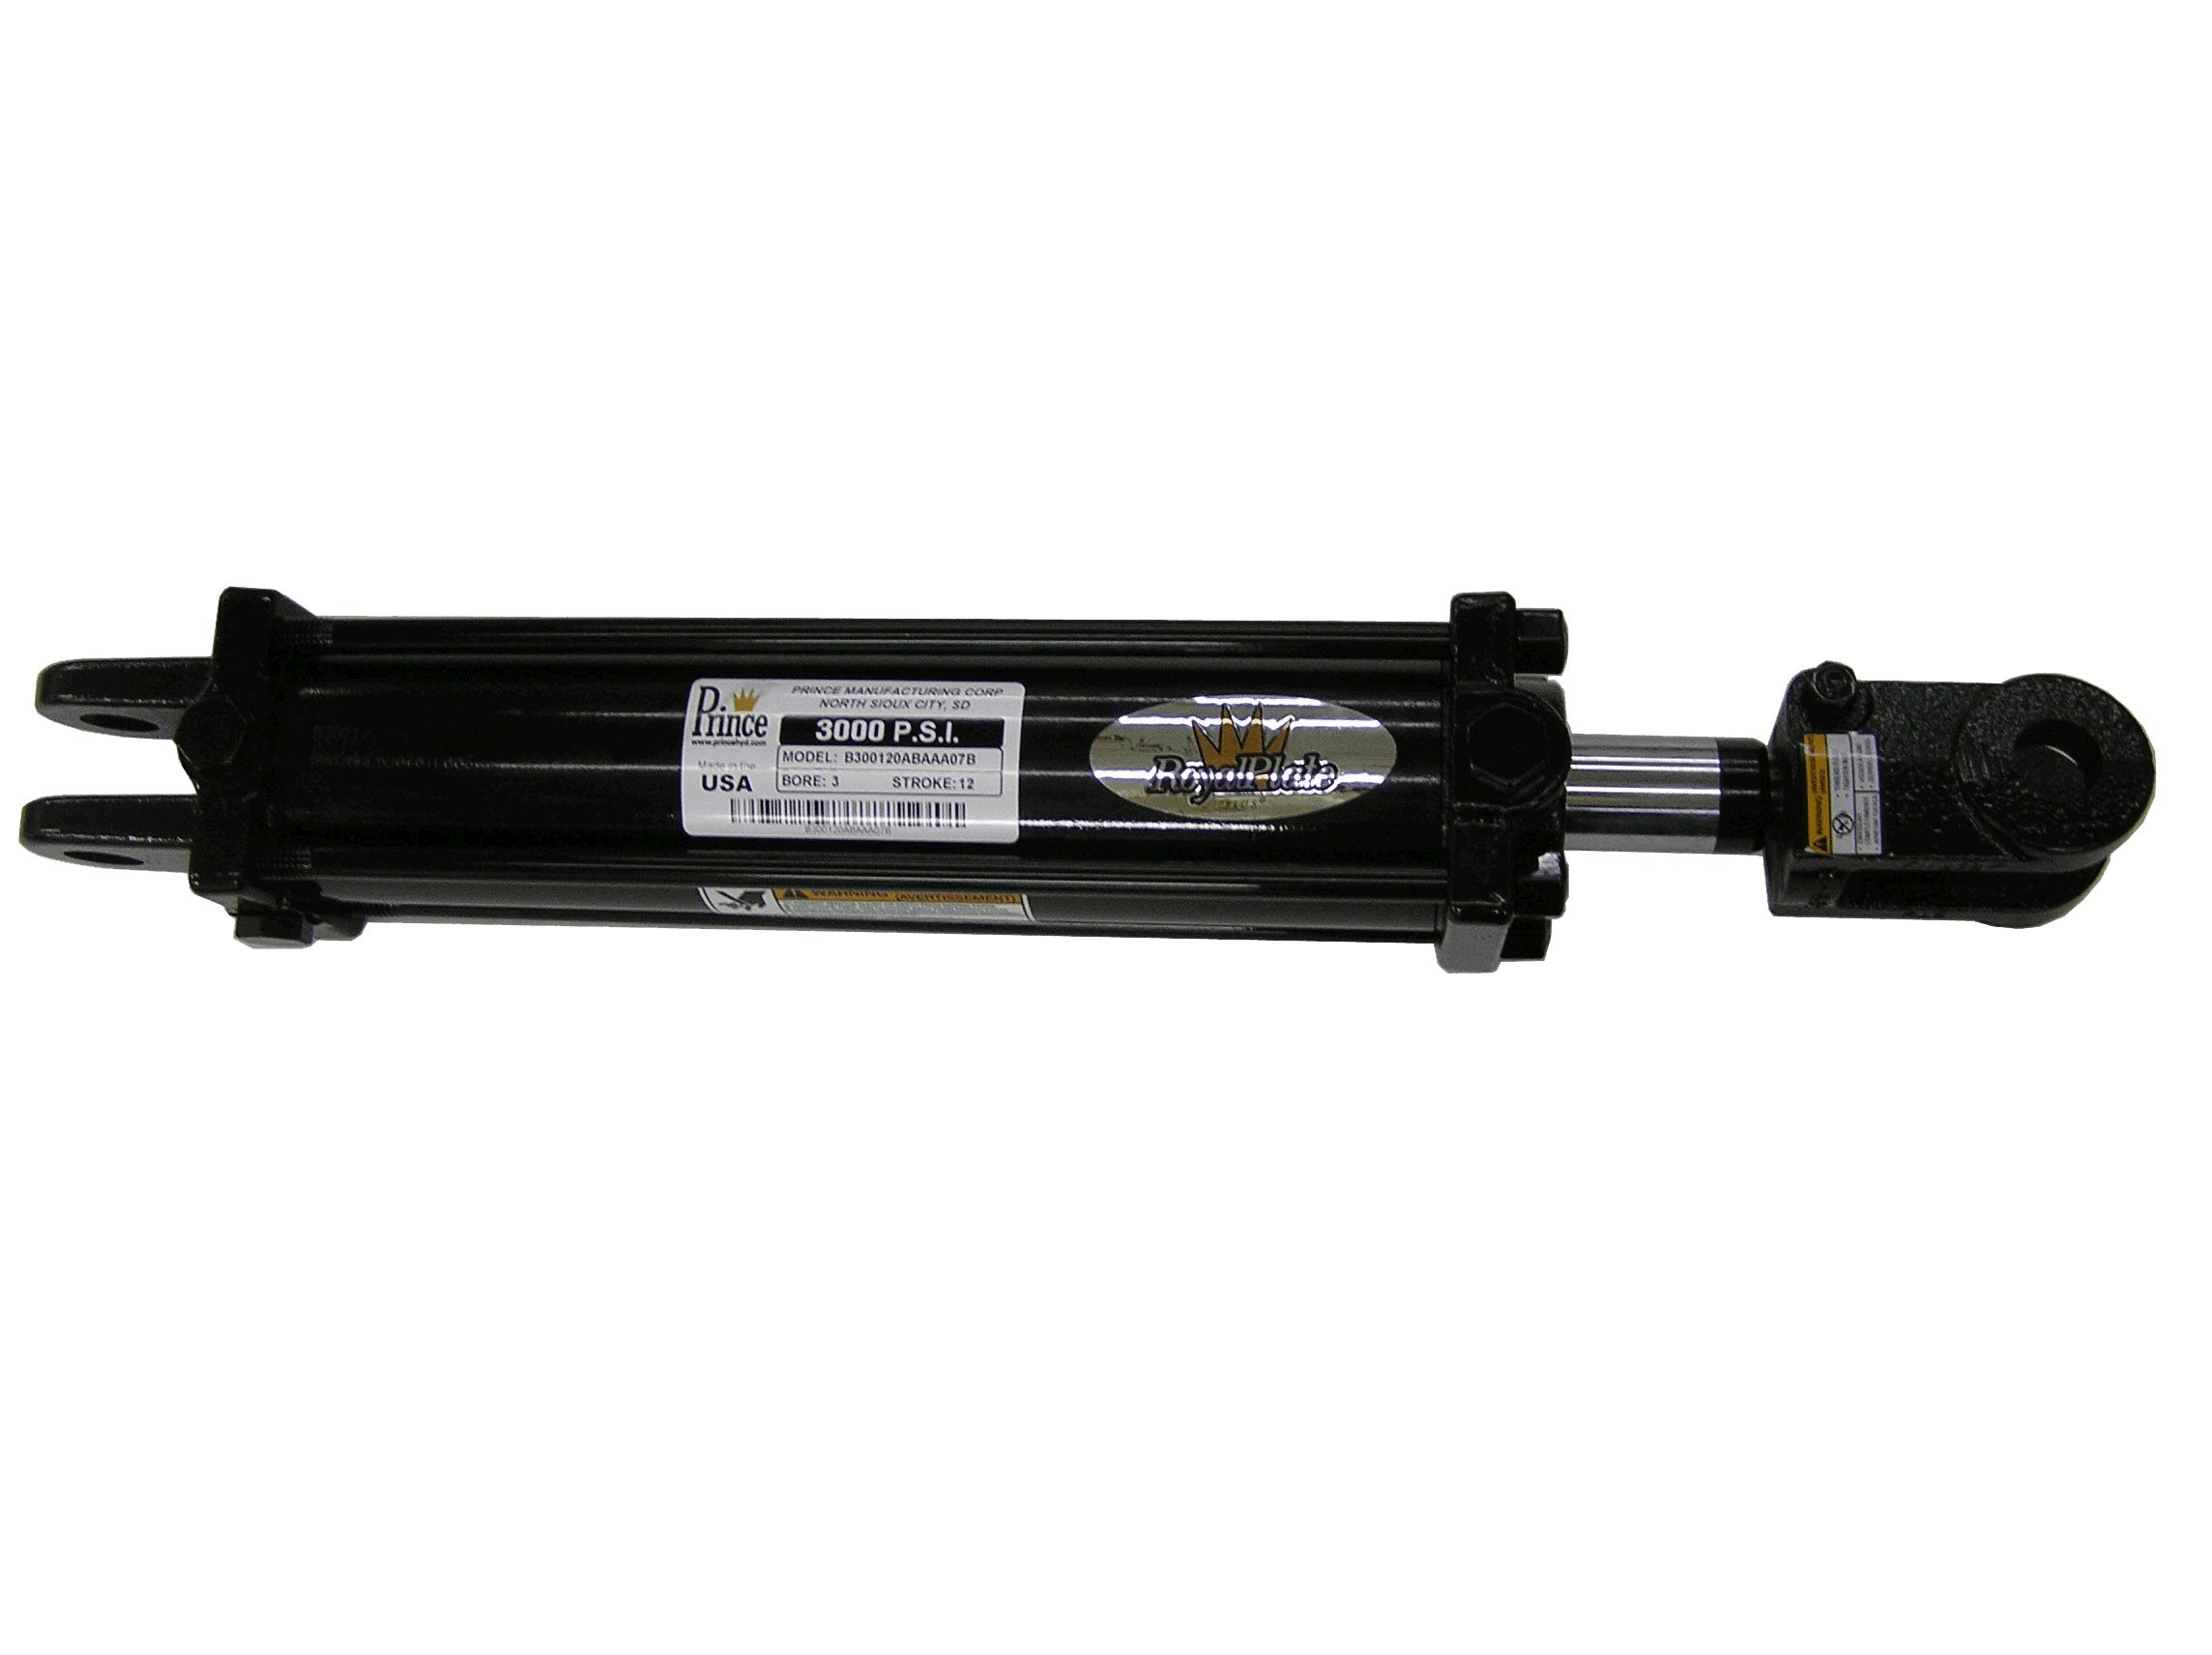 Prince B200240ABAAA07B Double-Acting Tie-Rod Hydraulic Cylinder, Clevis Mounting, Painted, 2'' Bore, 24'' Stroke, 1-1/8'' Rod Diameter, 3/4''-16 Thread, #8 SAE Port